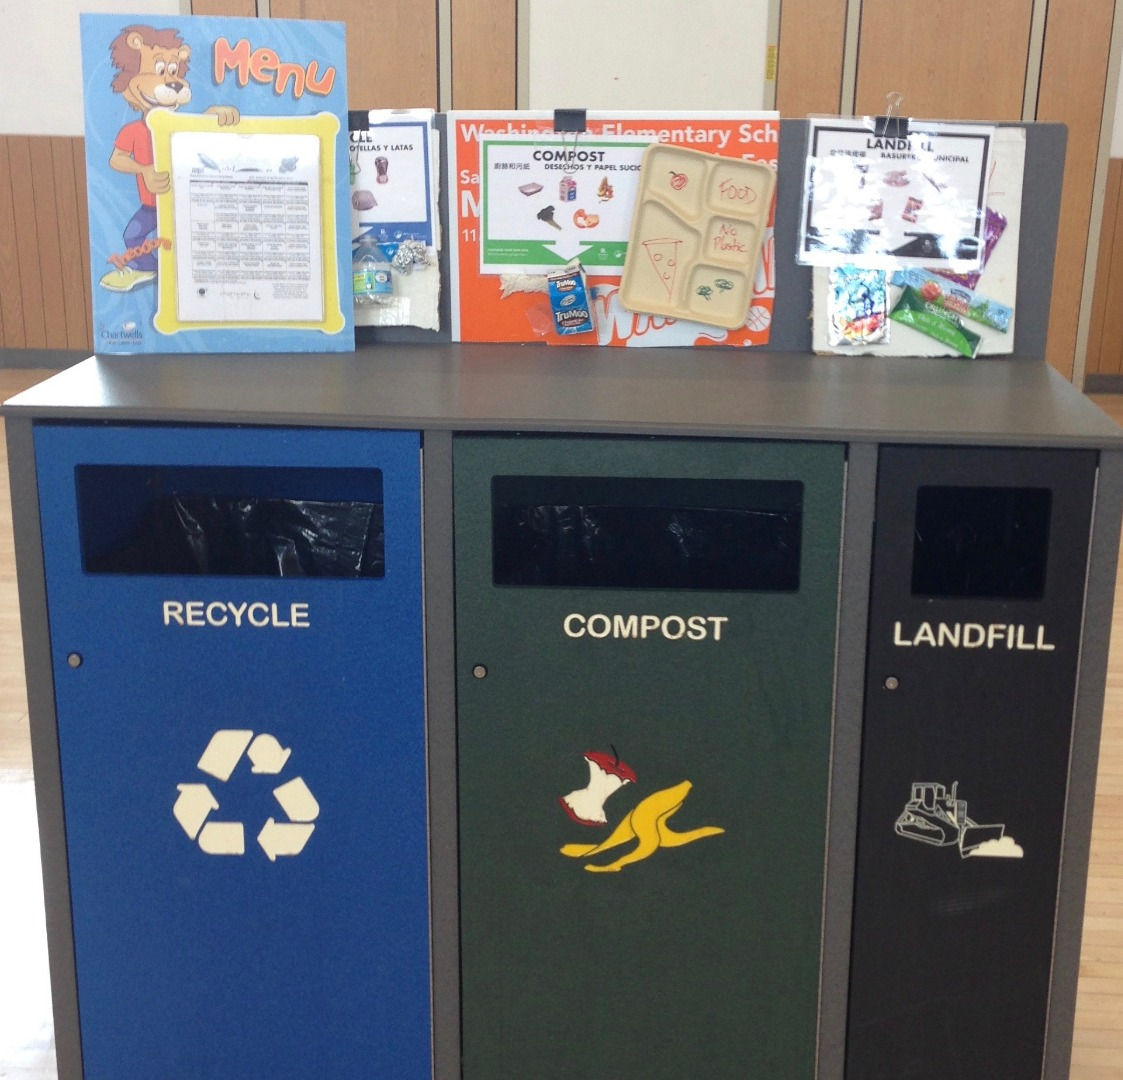 BSD Recycle, Compost and Landfill Bins with Helpful Signage